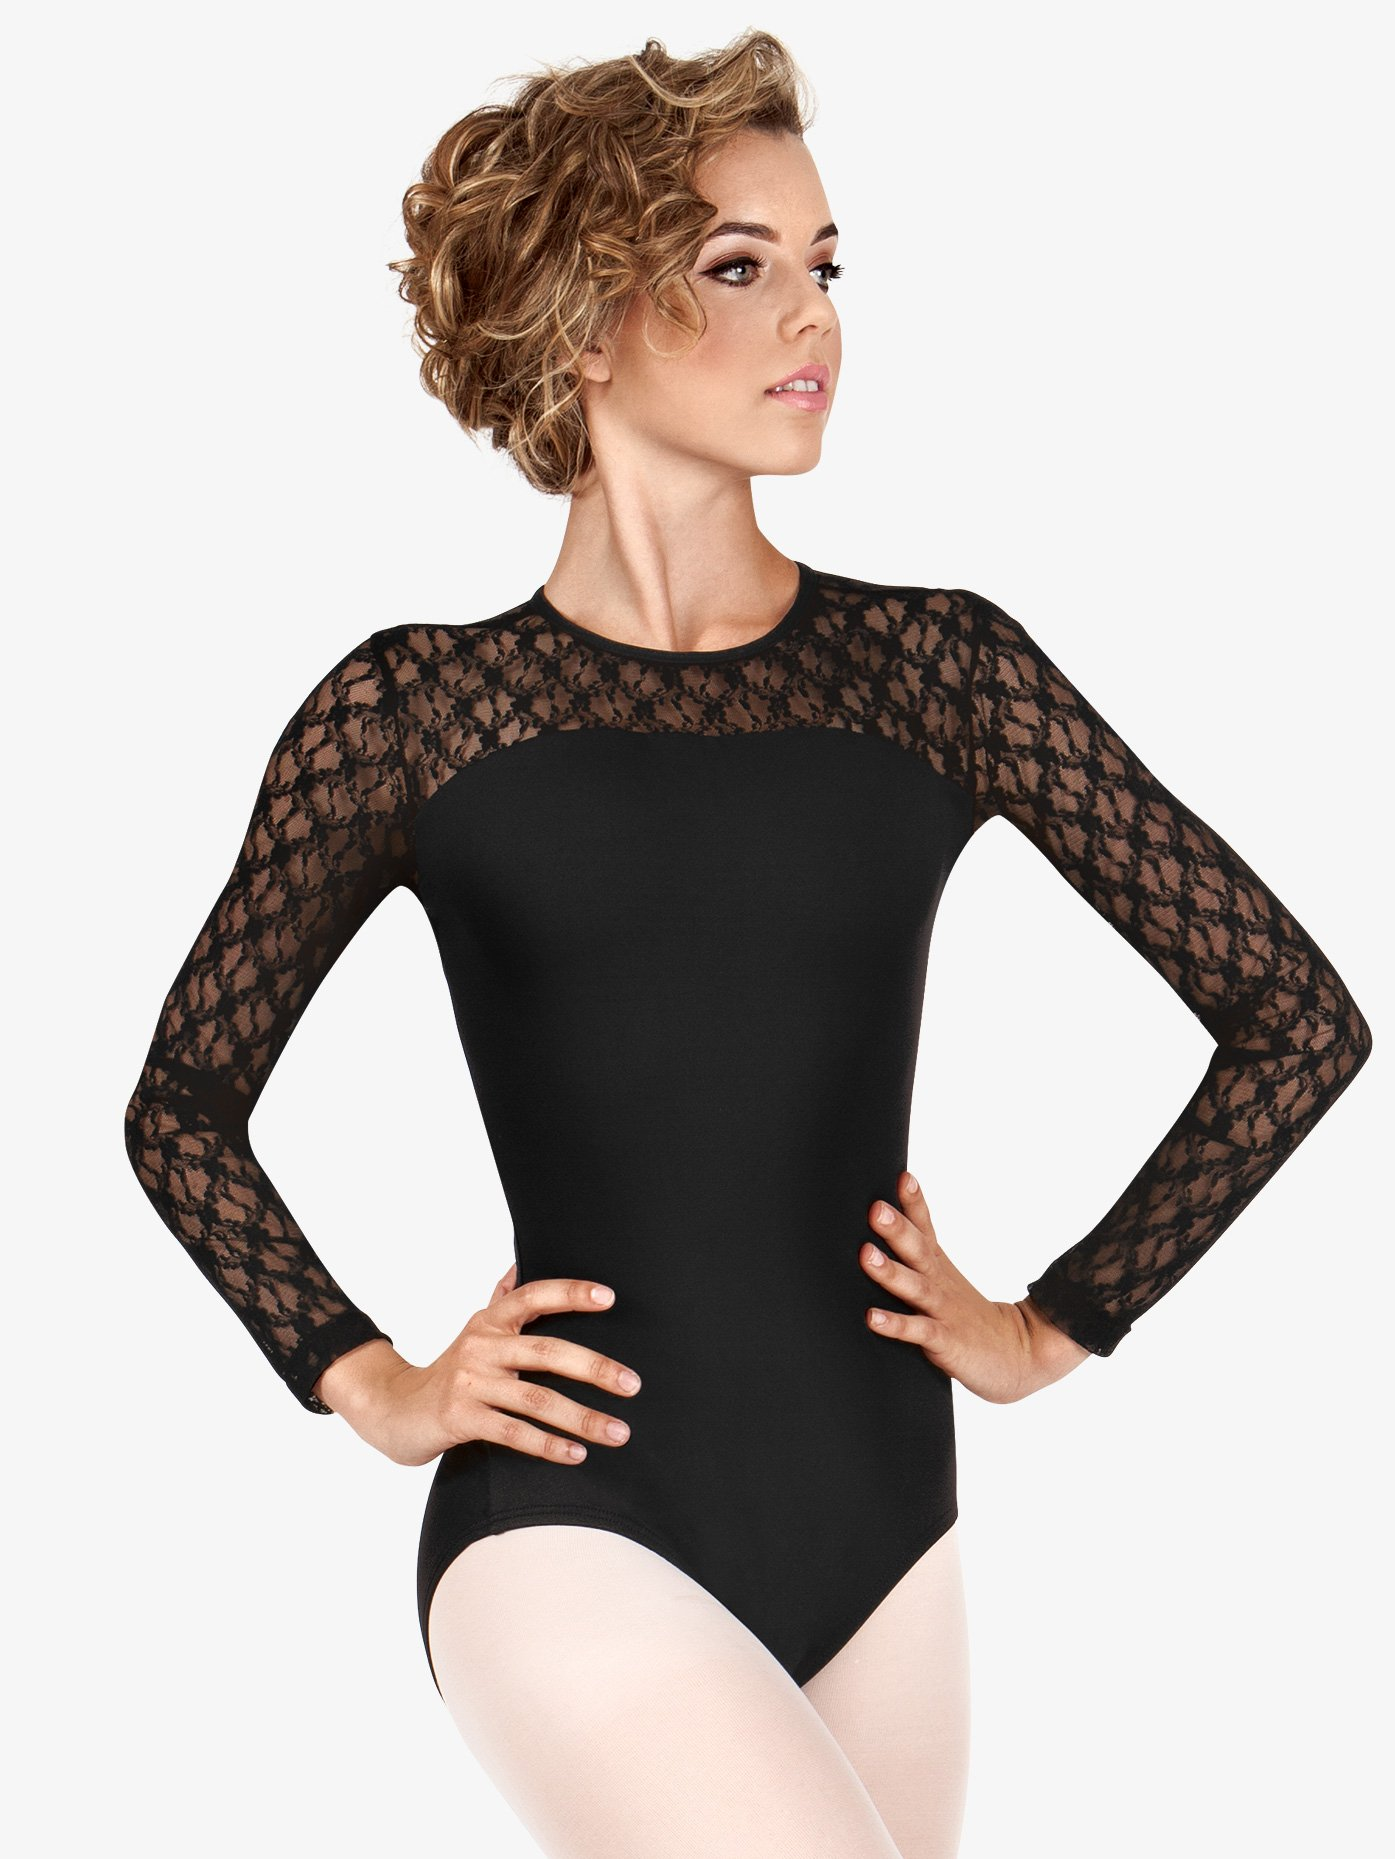 c0da9f95a7bb Womens Lace Long Sleeve Compression Leotard - Style No SIL88200. Loading  zoom